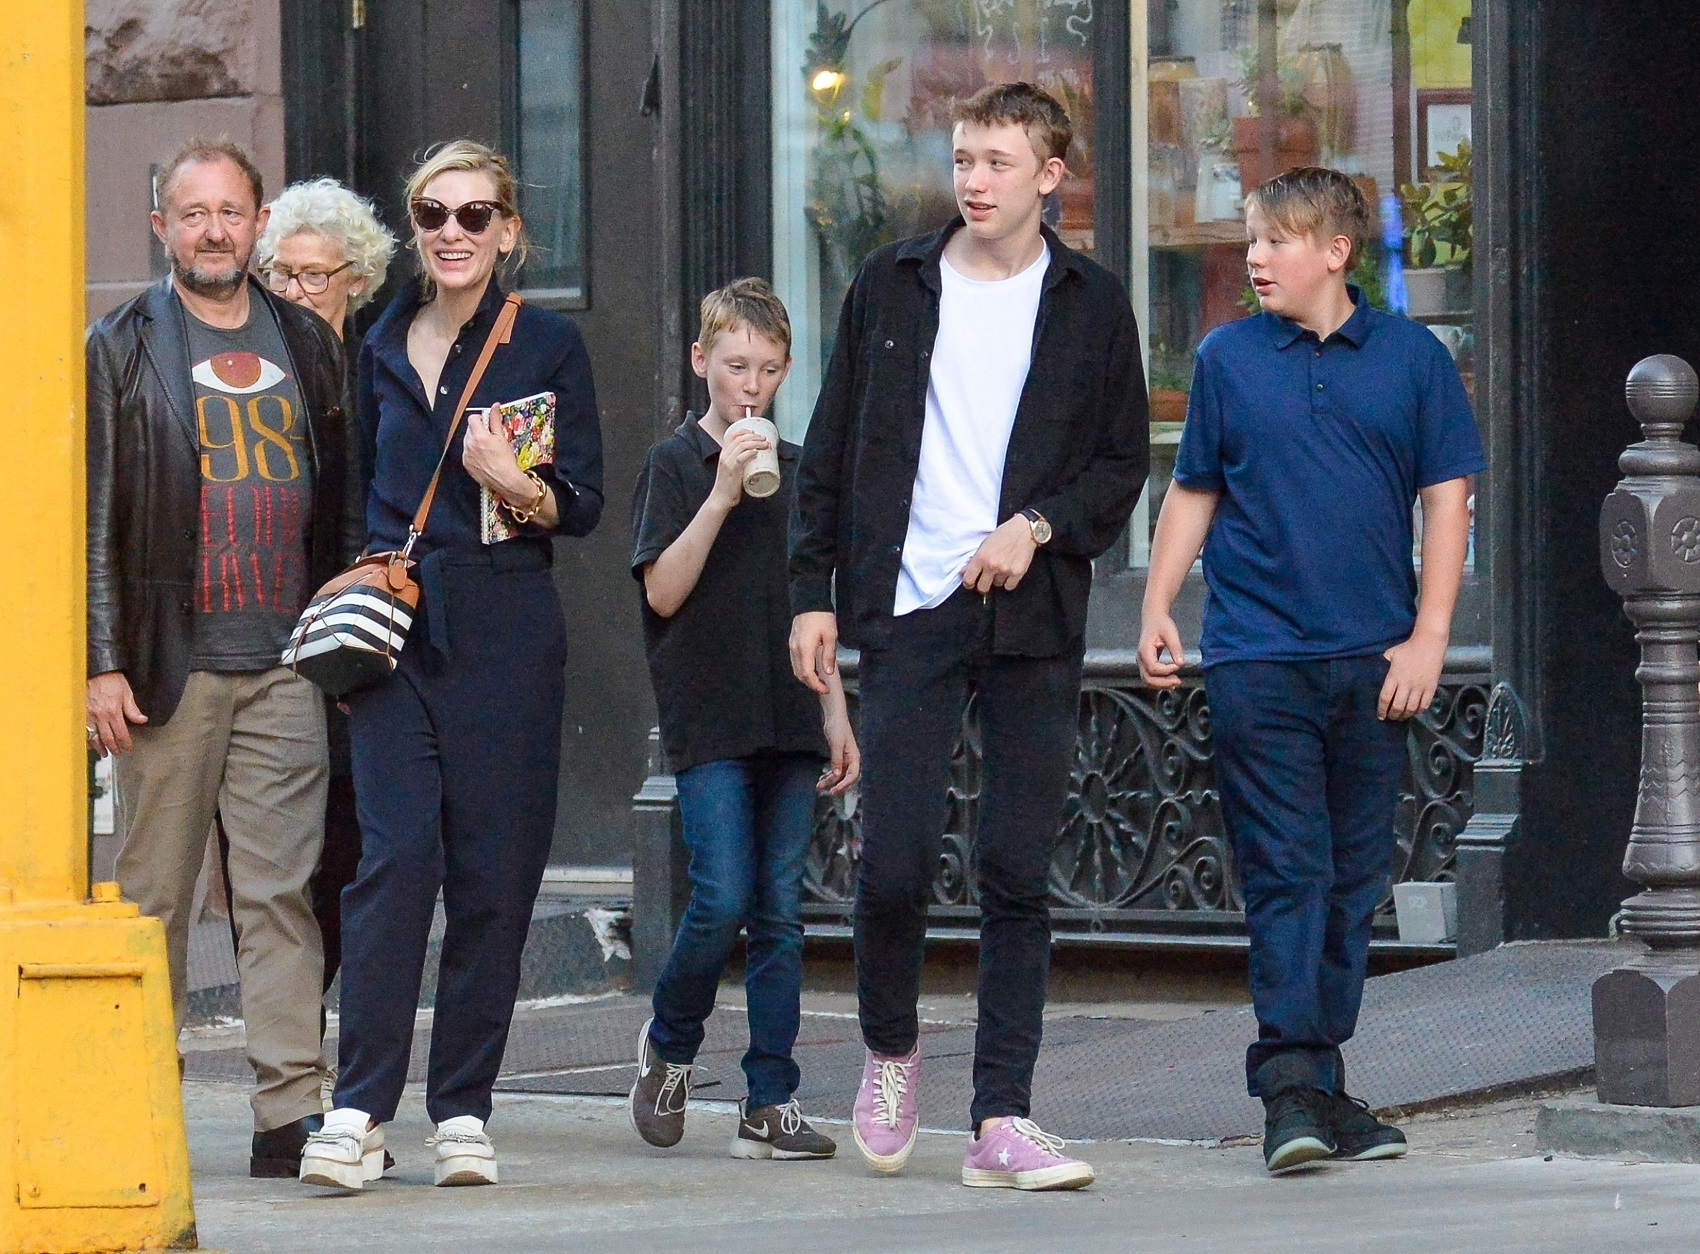 New York, NY  - *EXCLUSIVE*  - Actress Cate Blanchett, husband Andrew Upton, and their three boys, along with some family members, pictured strolling around NY on this Friday morning. Cate Blanchett might not be done wreaking havoc on the Marvel Cinematic Universe now that Natalie Portman is becoming the 'female Thor'. The two-time Academy Award winner obliterated Asgard as Hela, the goddess of death, in Thor: Ragnarok and nearly brought both the God of Thunder and his brother Loki to their knees, before being taken down by Surtur.  Blanchett has still been following the news about the MCU, and she's thrilled that fellow Oscar winner Portman will actually take the hammer in Thor: Love and Thunder.